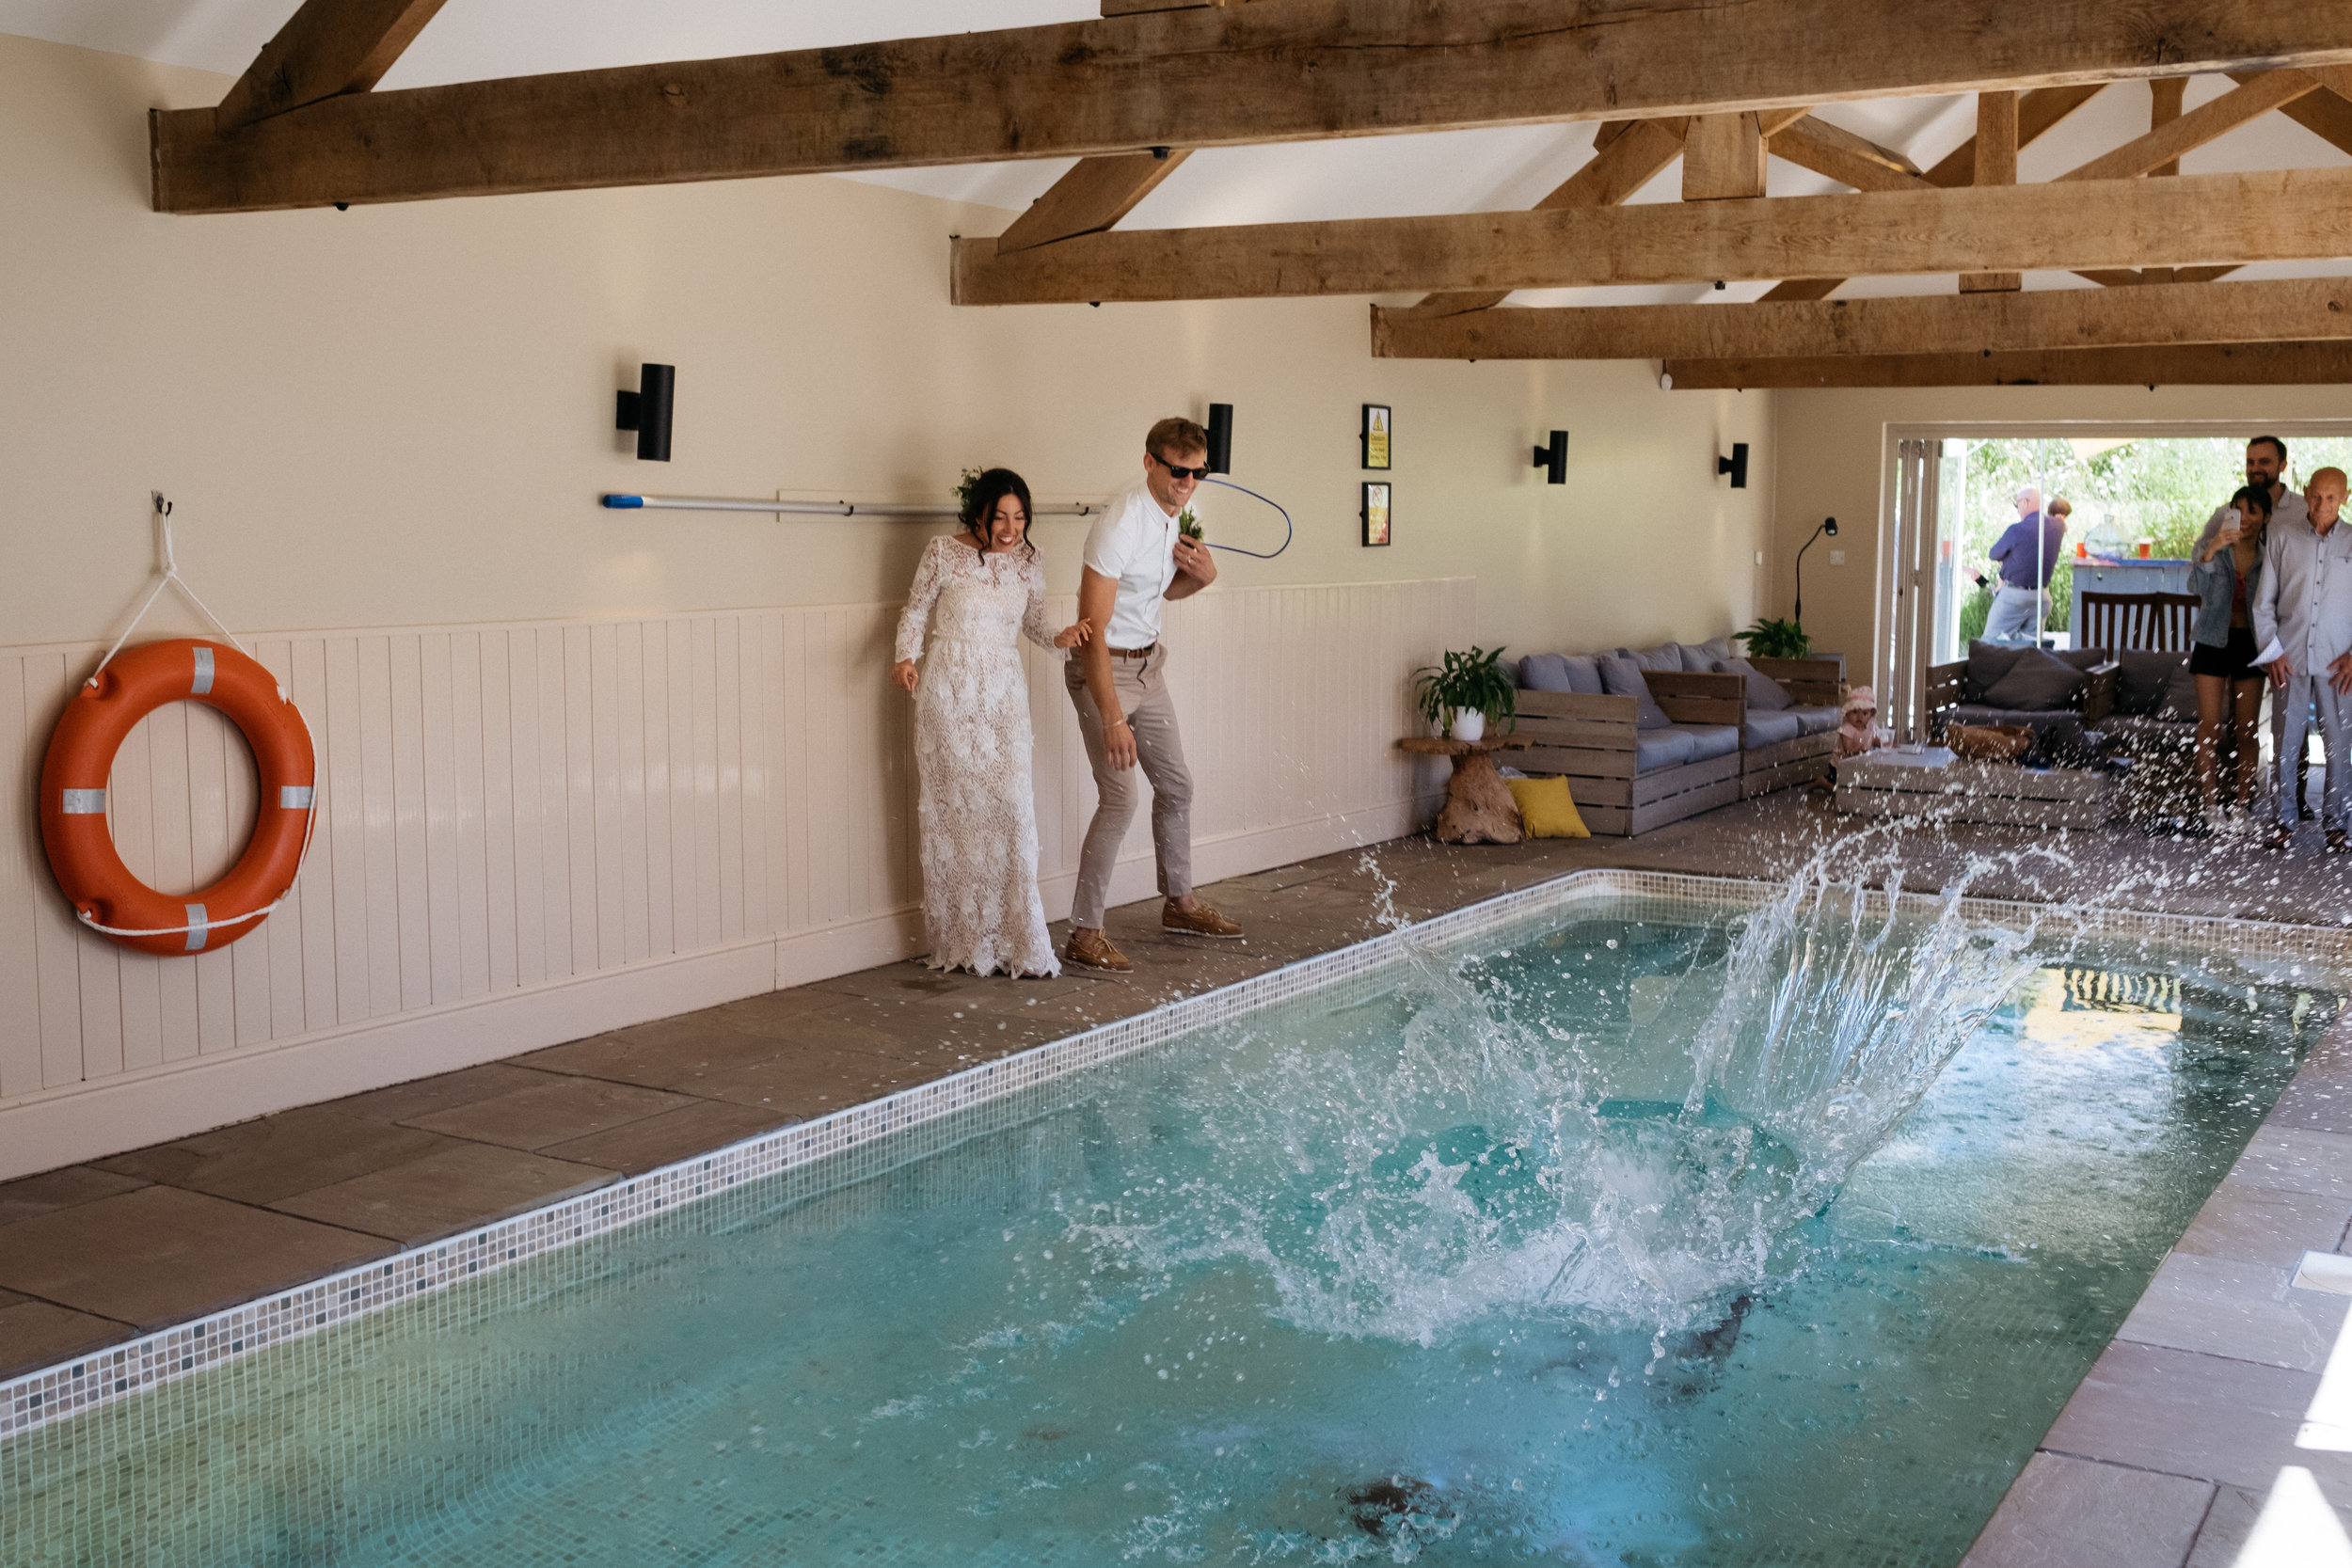 Wedding guest gets thrown into the swimming pool by bride and groom